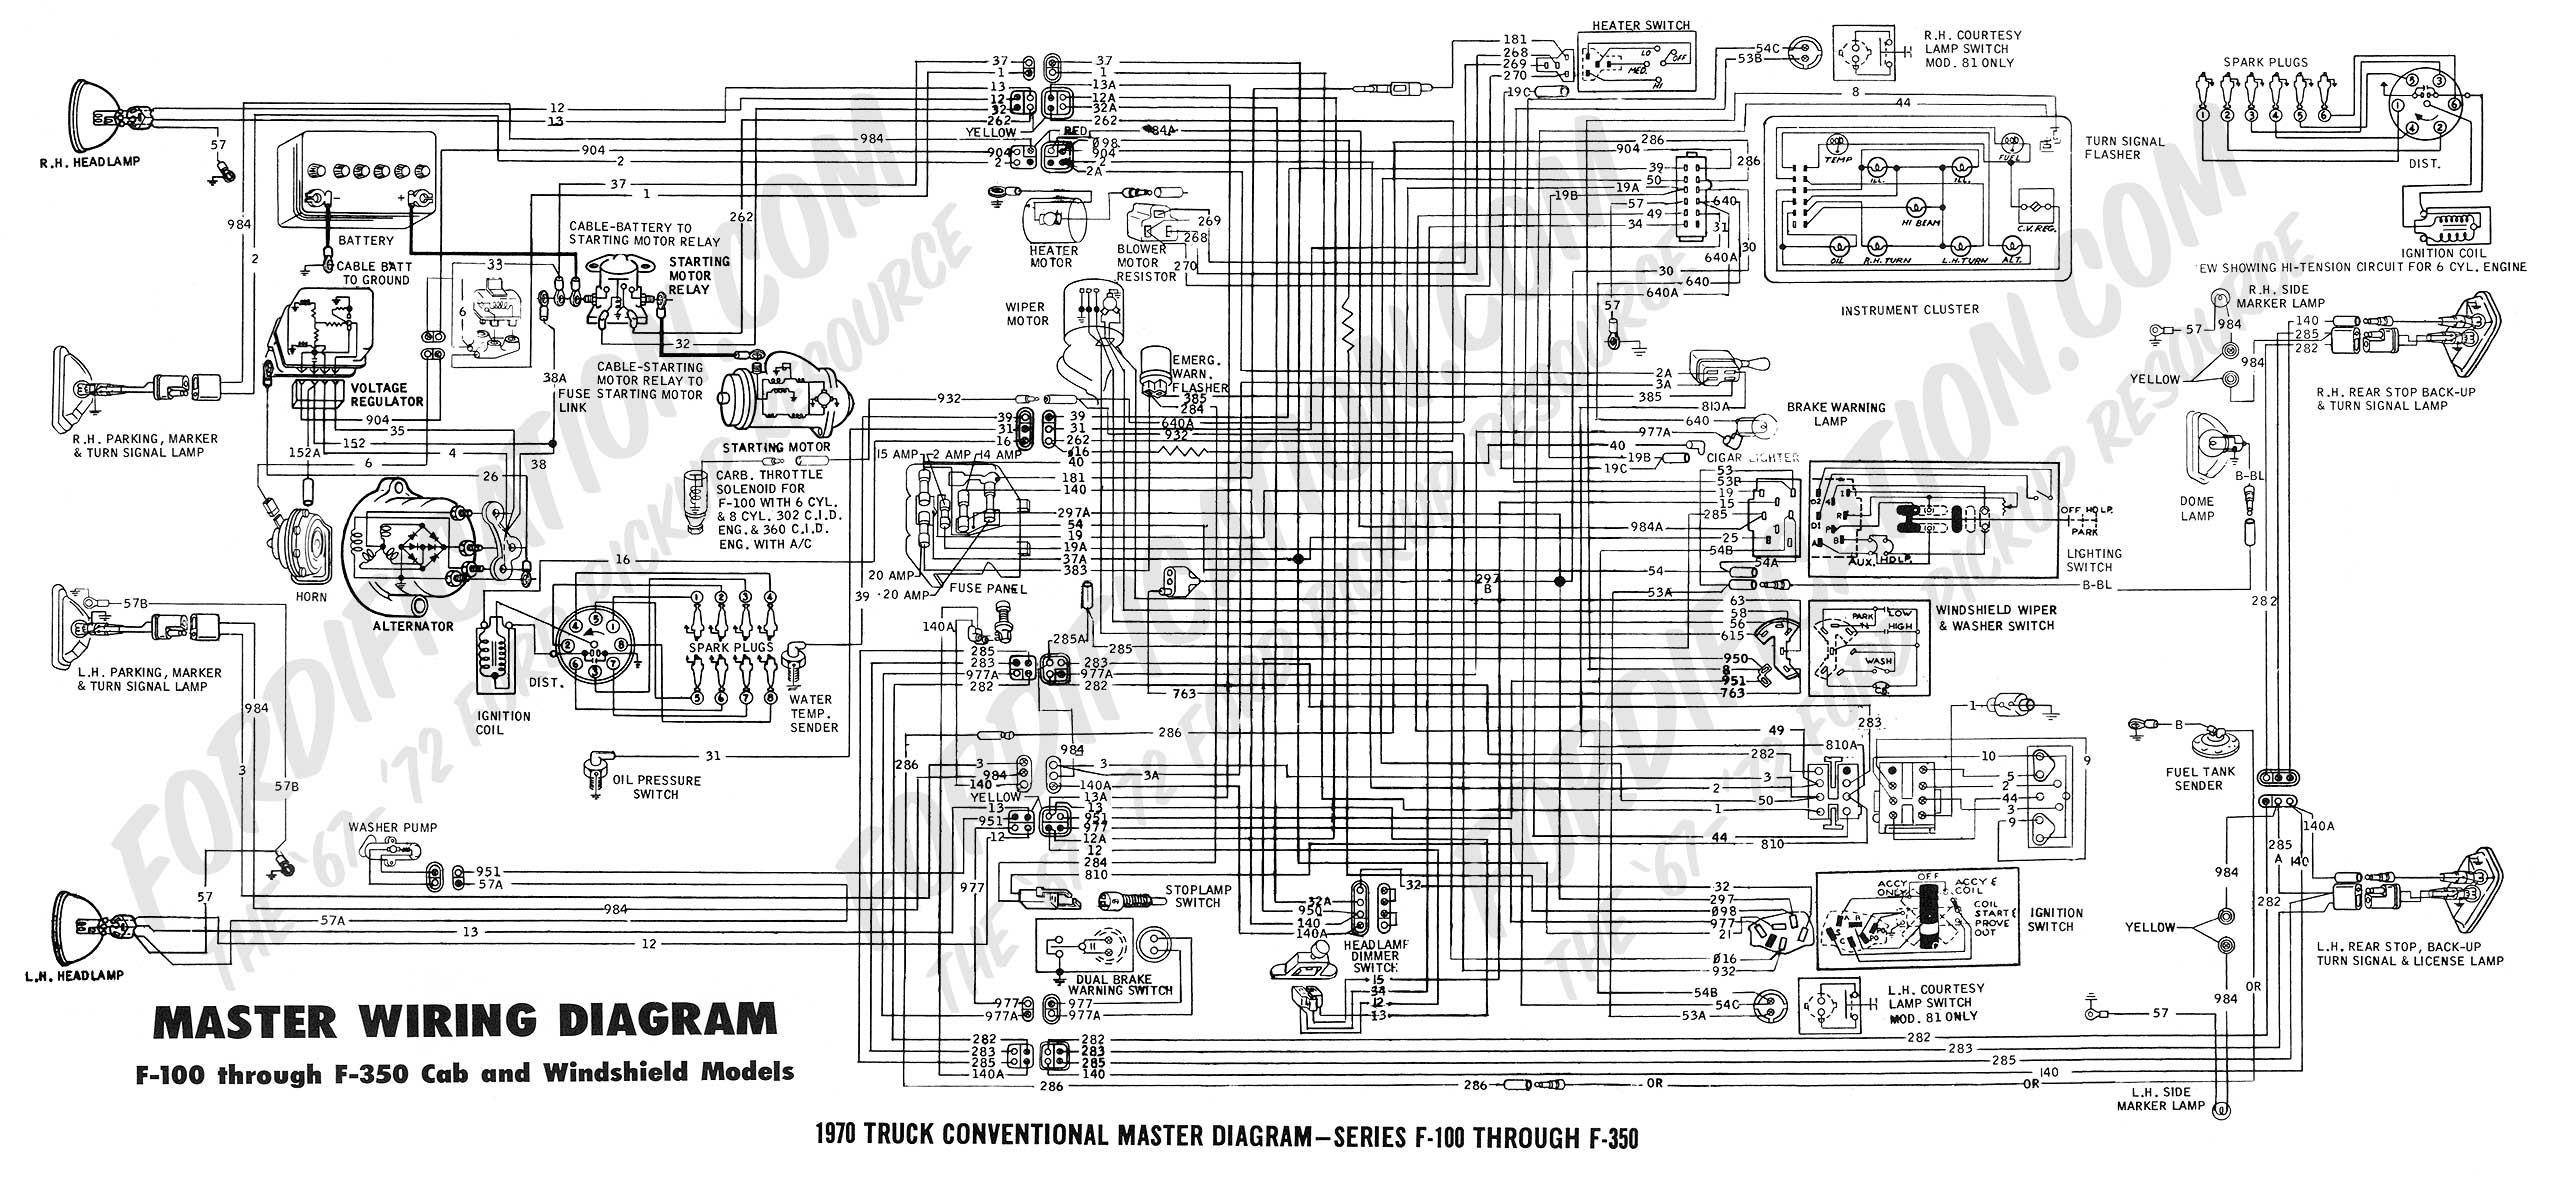 wiring diagram 70_master wiring diagram for 1971 ford f100 pickup readingrat net 1971 ford f250 wiring diagram at mr168.co